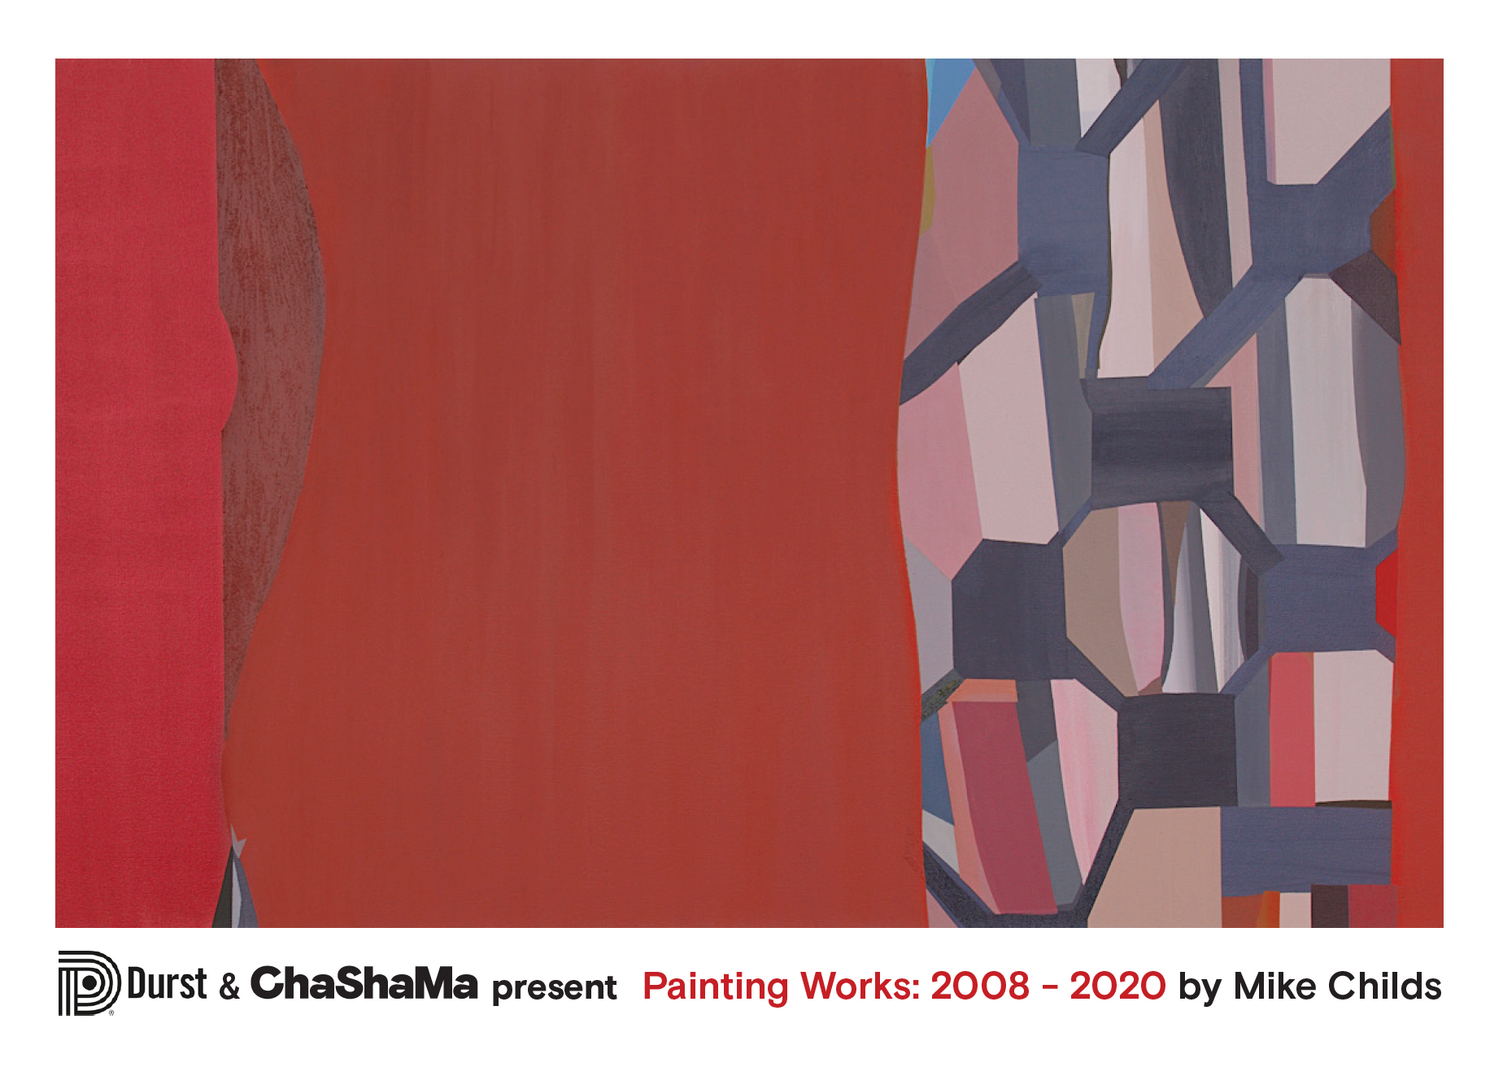 Exhibition Postcard: Mike Childs